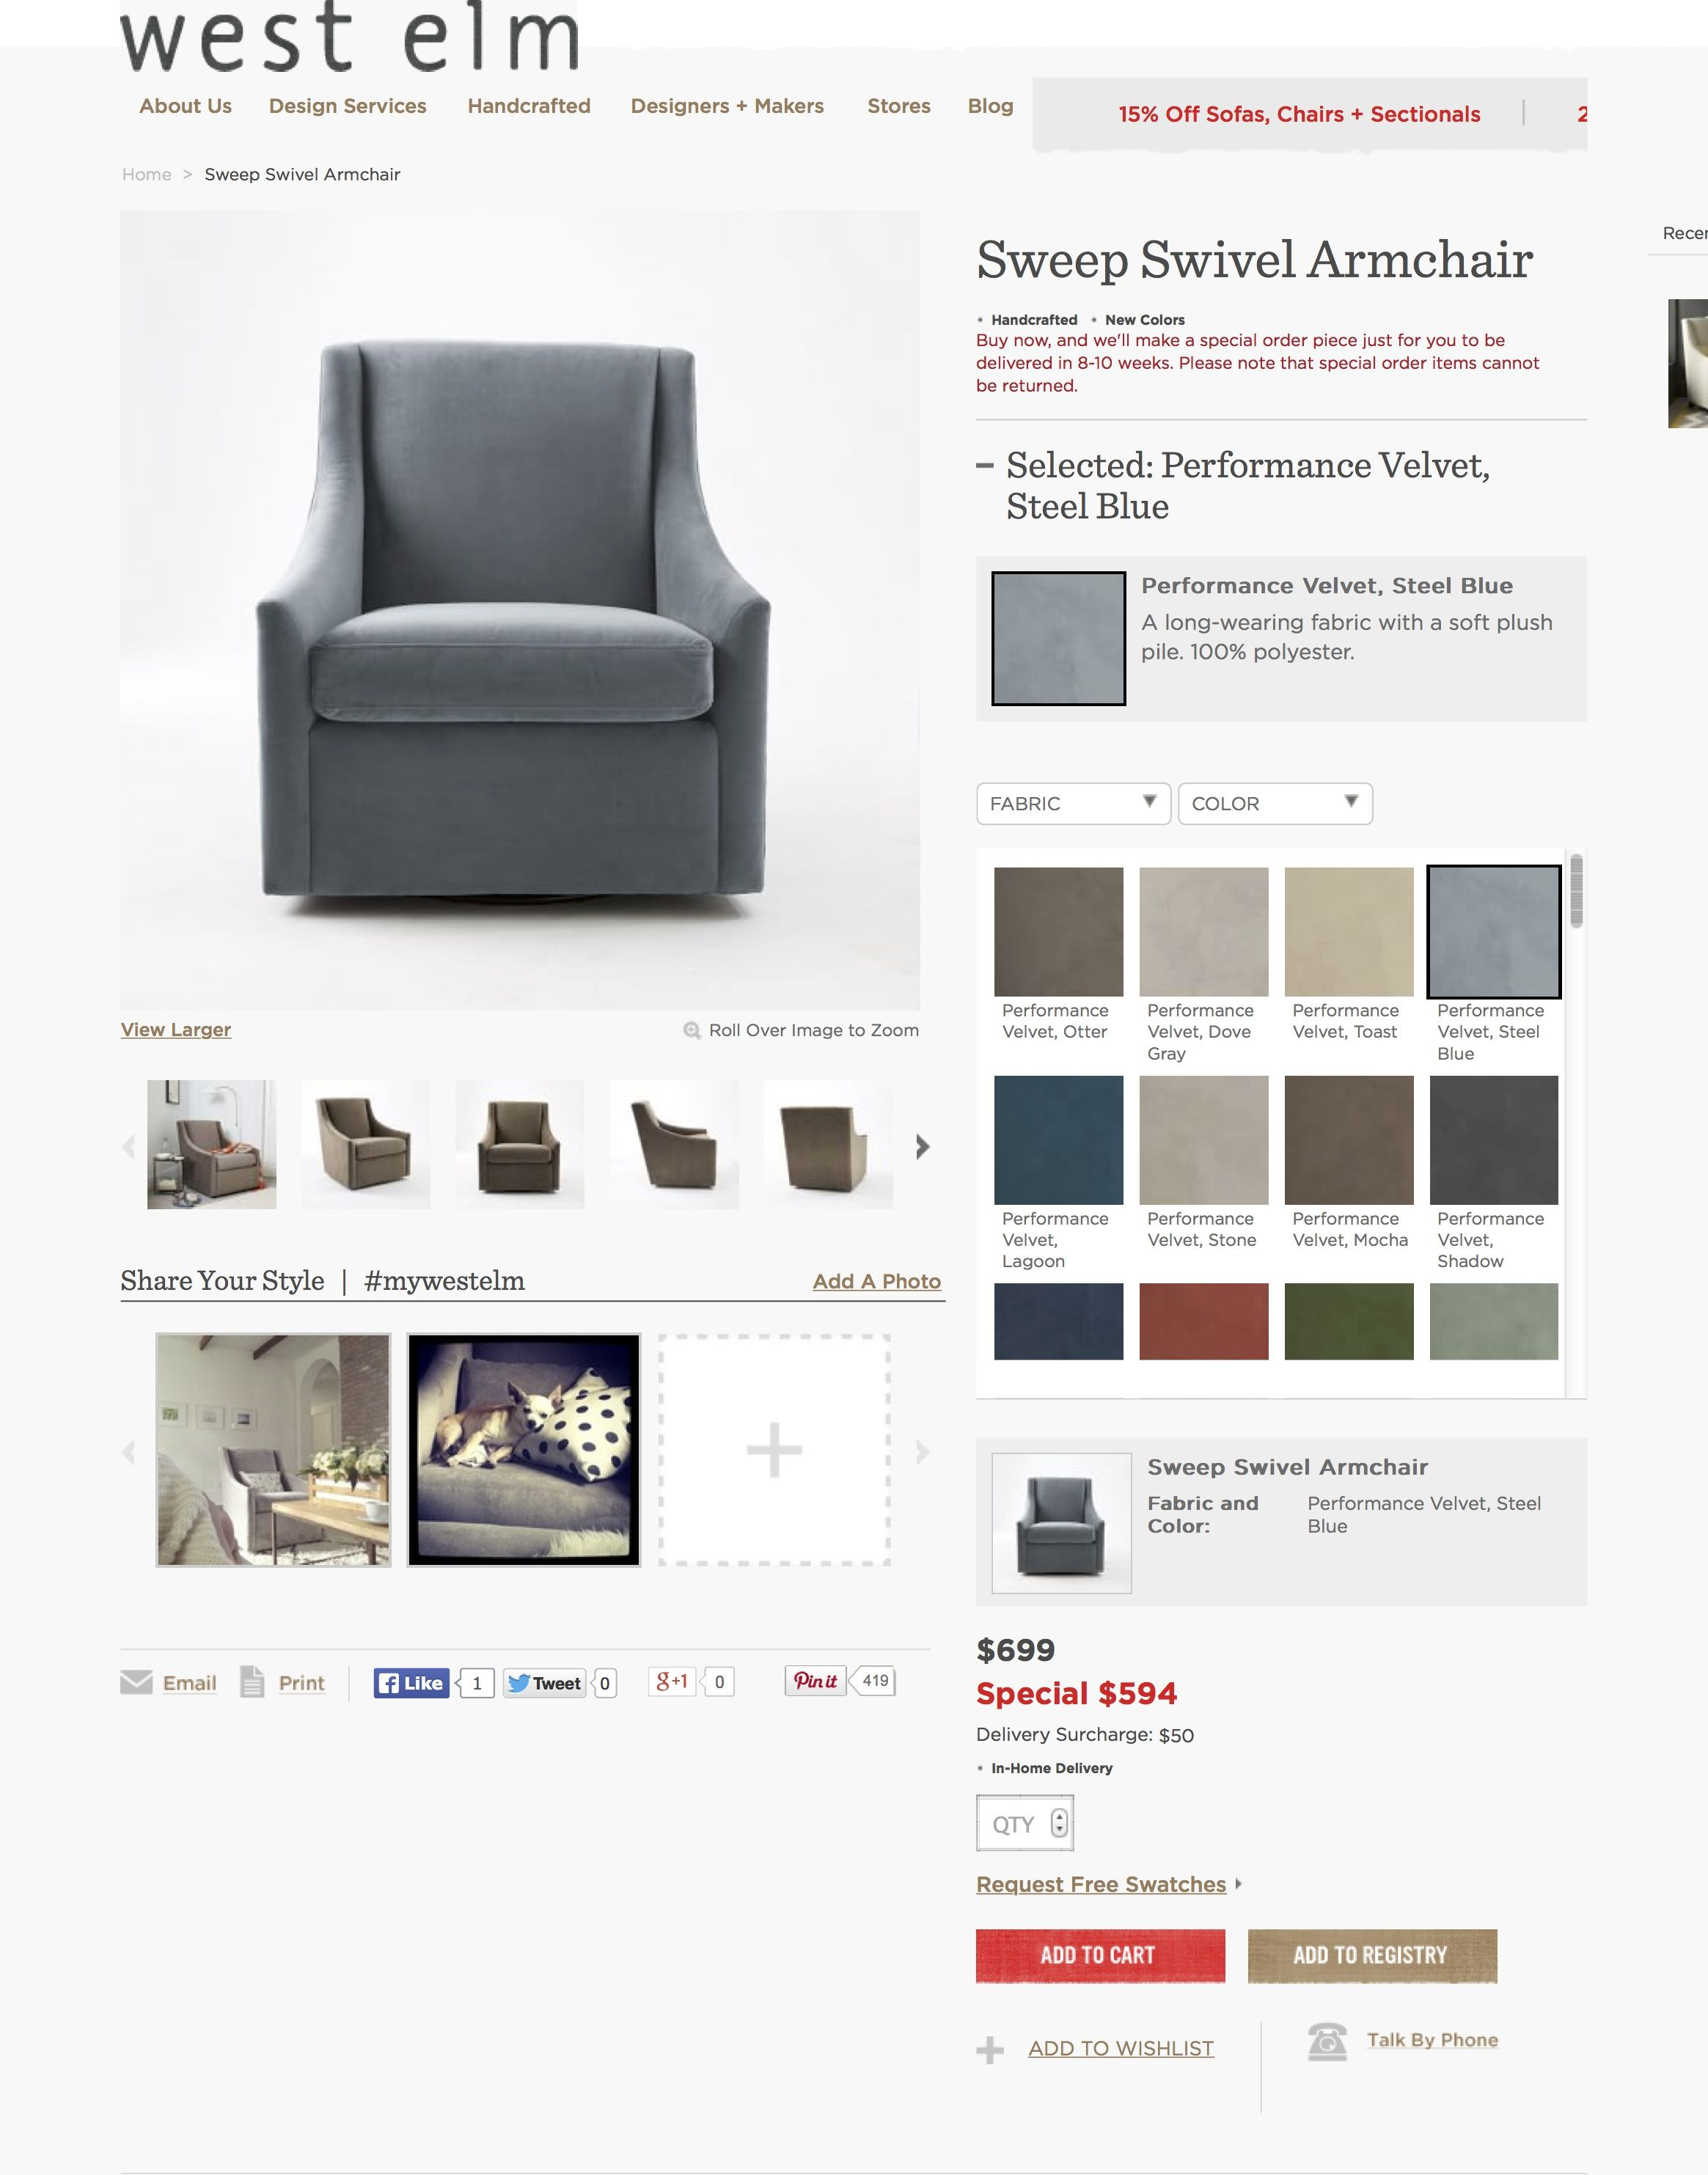 Swivel Chair In Front Of Fireplace Swivel Armchair Steel Blue Fabric Color